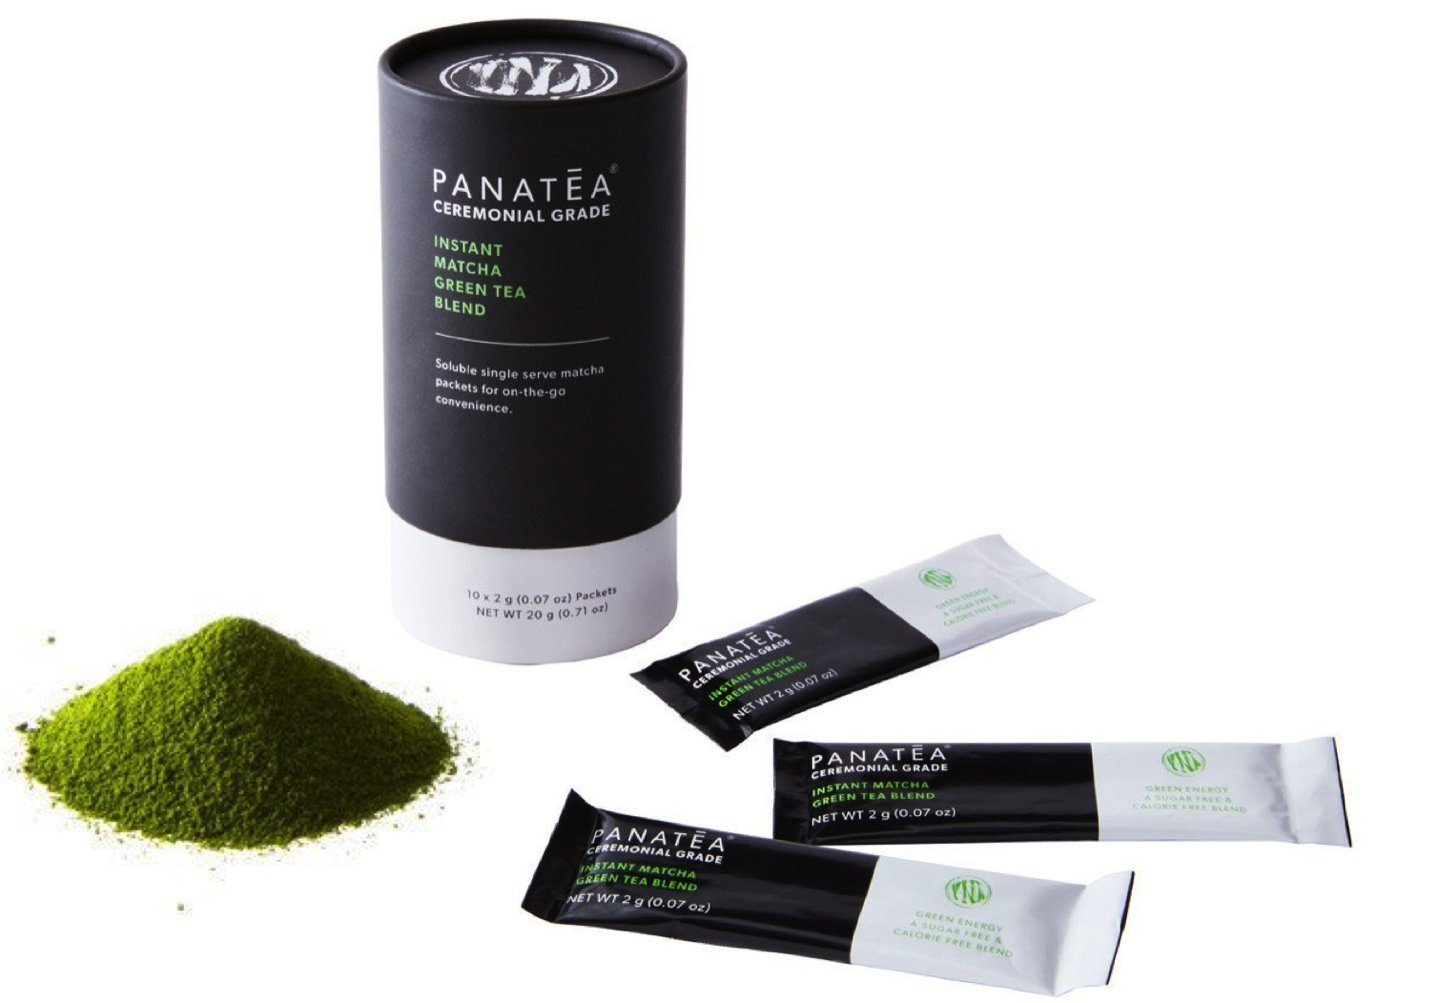 PANATEA Instant Matcha Packets Ceremonial Grade Green Tea Powder Single Serving Matcha On The Go Travel Packs (10 Unit Canister)